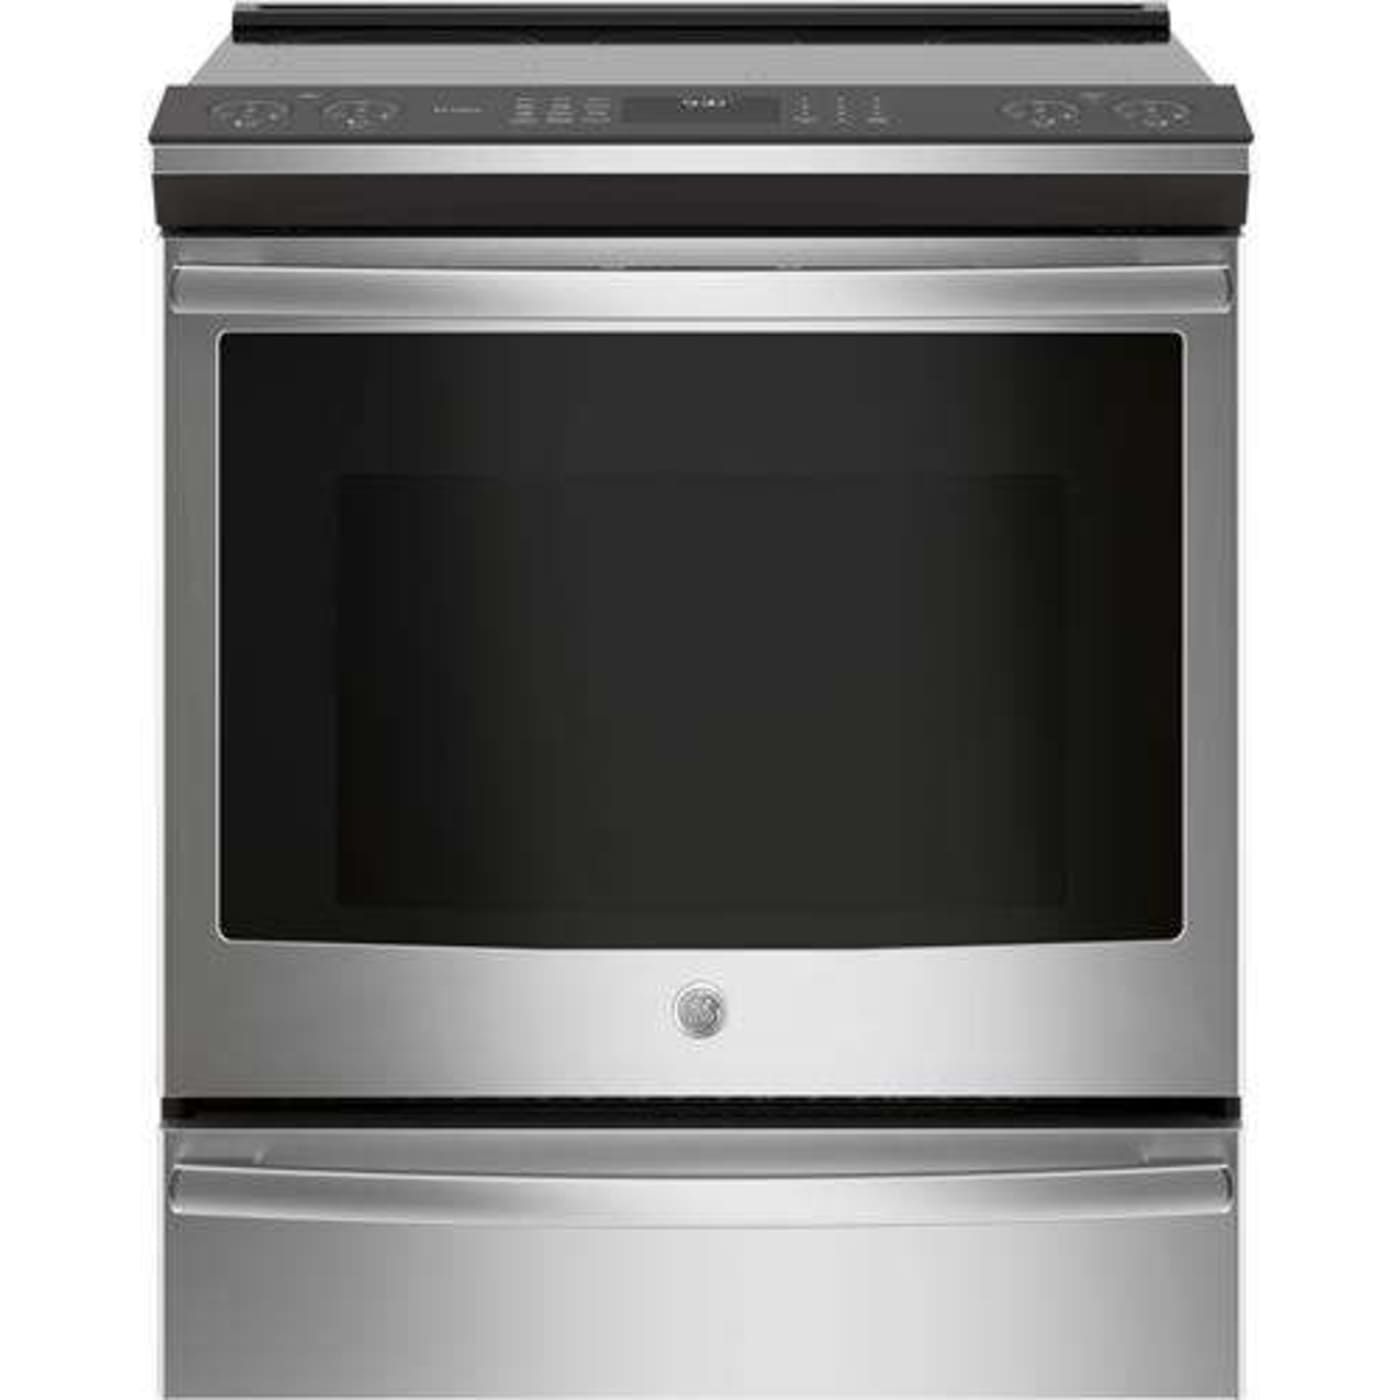 Ge phs930slss profile 30 stainless steel slide in induction range ge phs930slss fandeluxe Choice Image